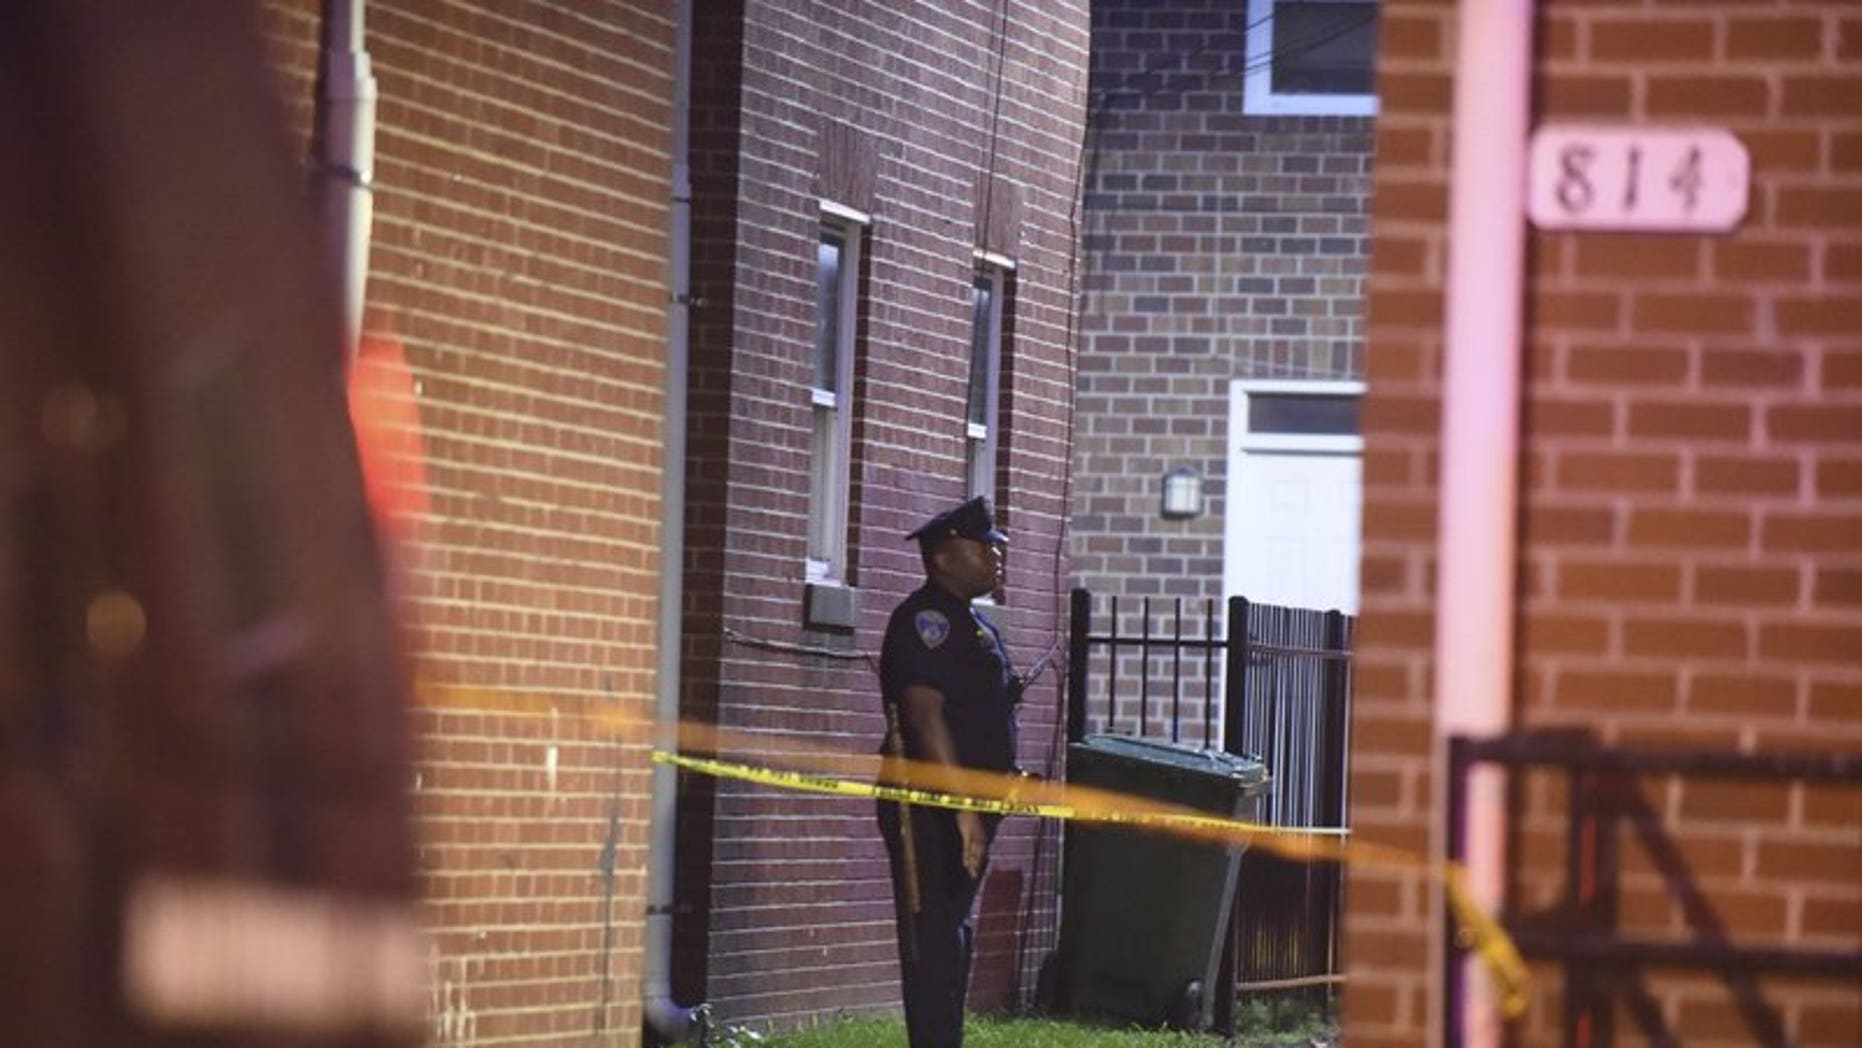 Authorities in Baltimore responded to a shootout between a police officer and a gunman. One witness said it sounded like a war.